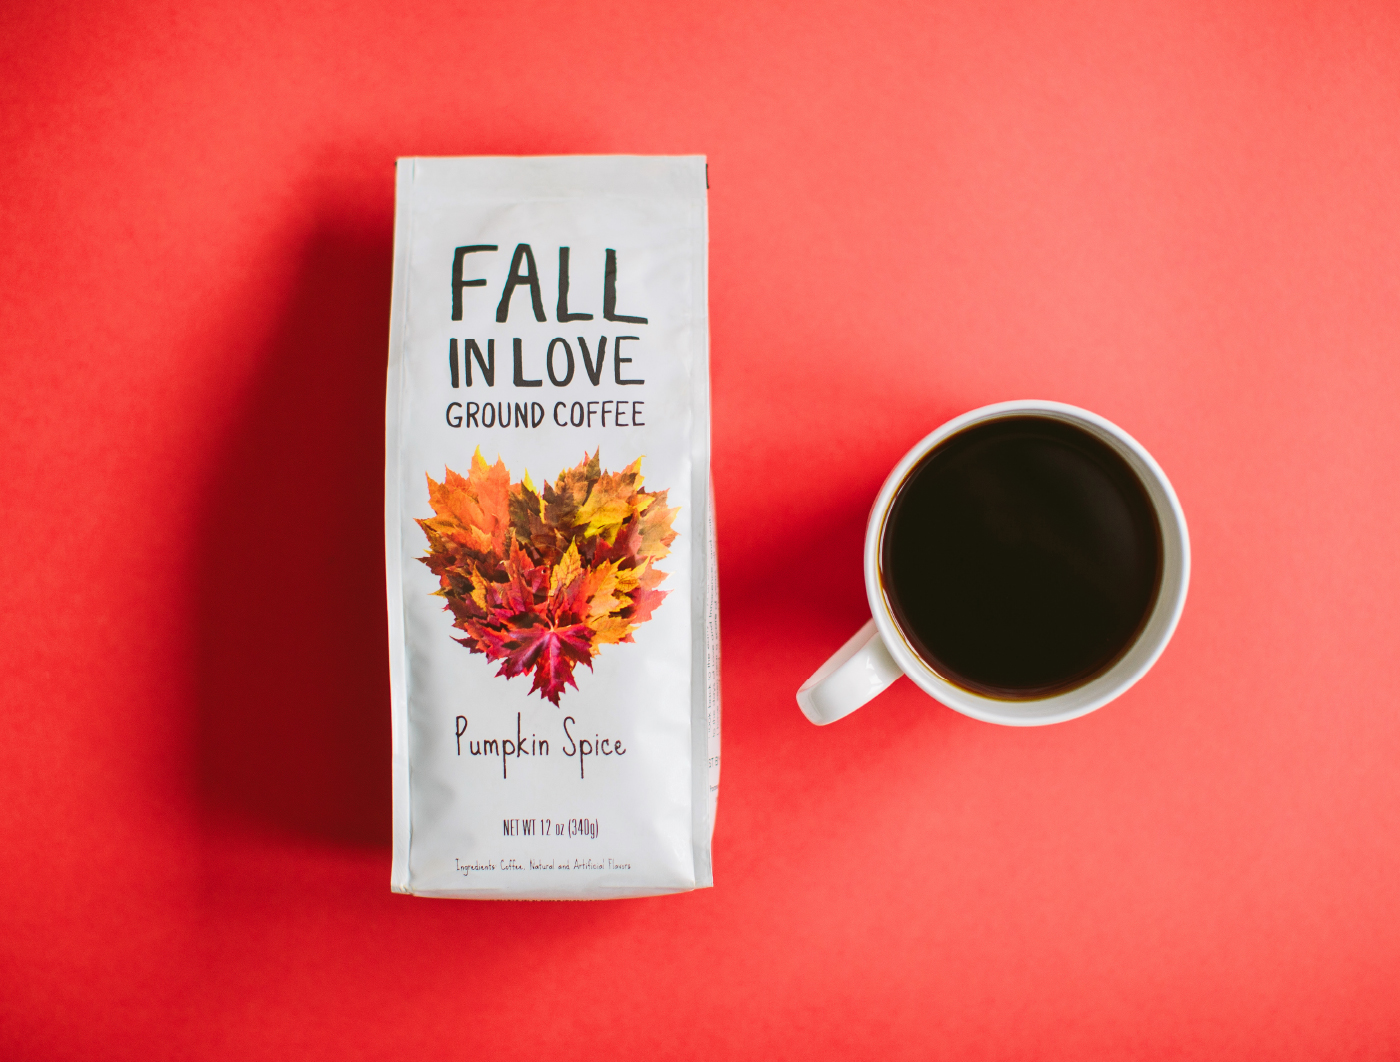 Paramount Fall in Love Coffee Packaging